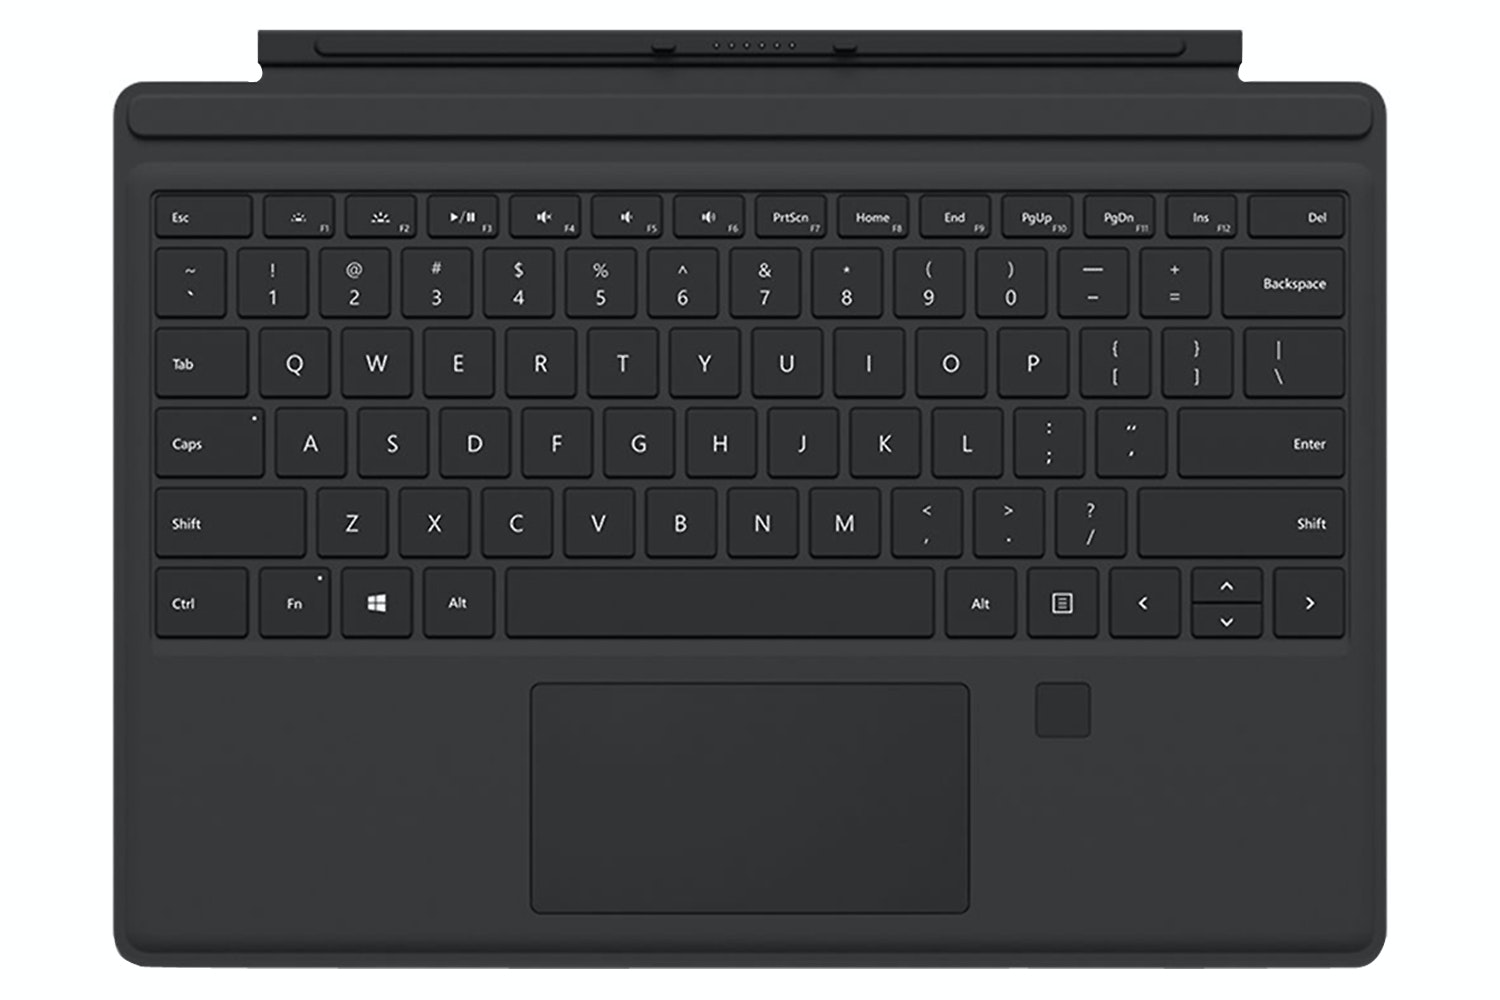 Surface Pro 4 Cover Fingerprint Reader